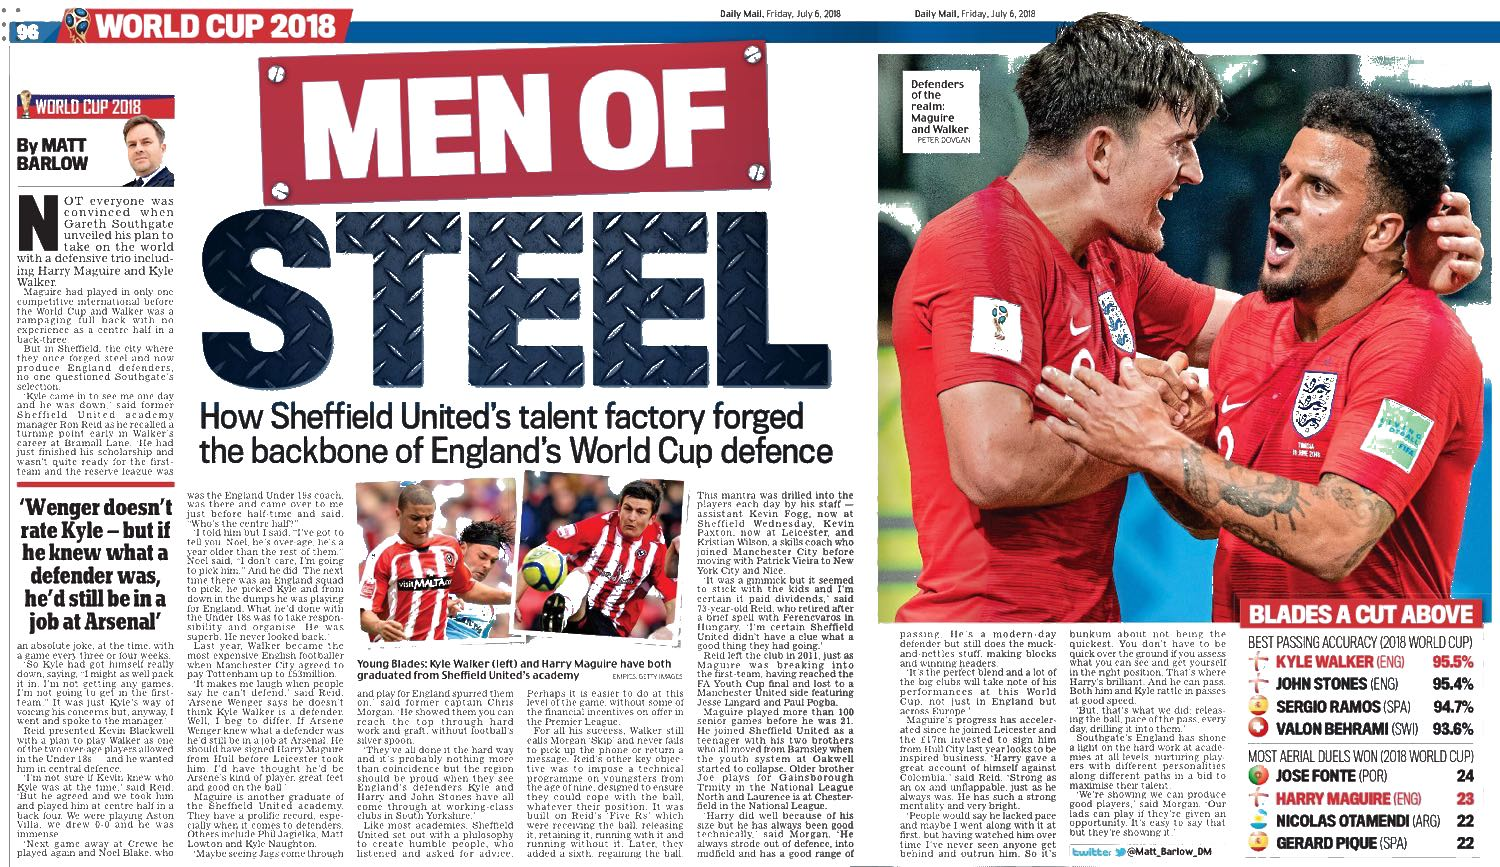 Sheffield United Academy has produced England World Cup men of steel writes Matt Barlow of ex-Blades in Daily Mail